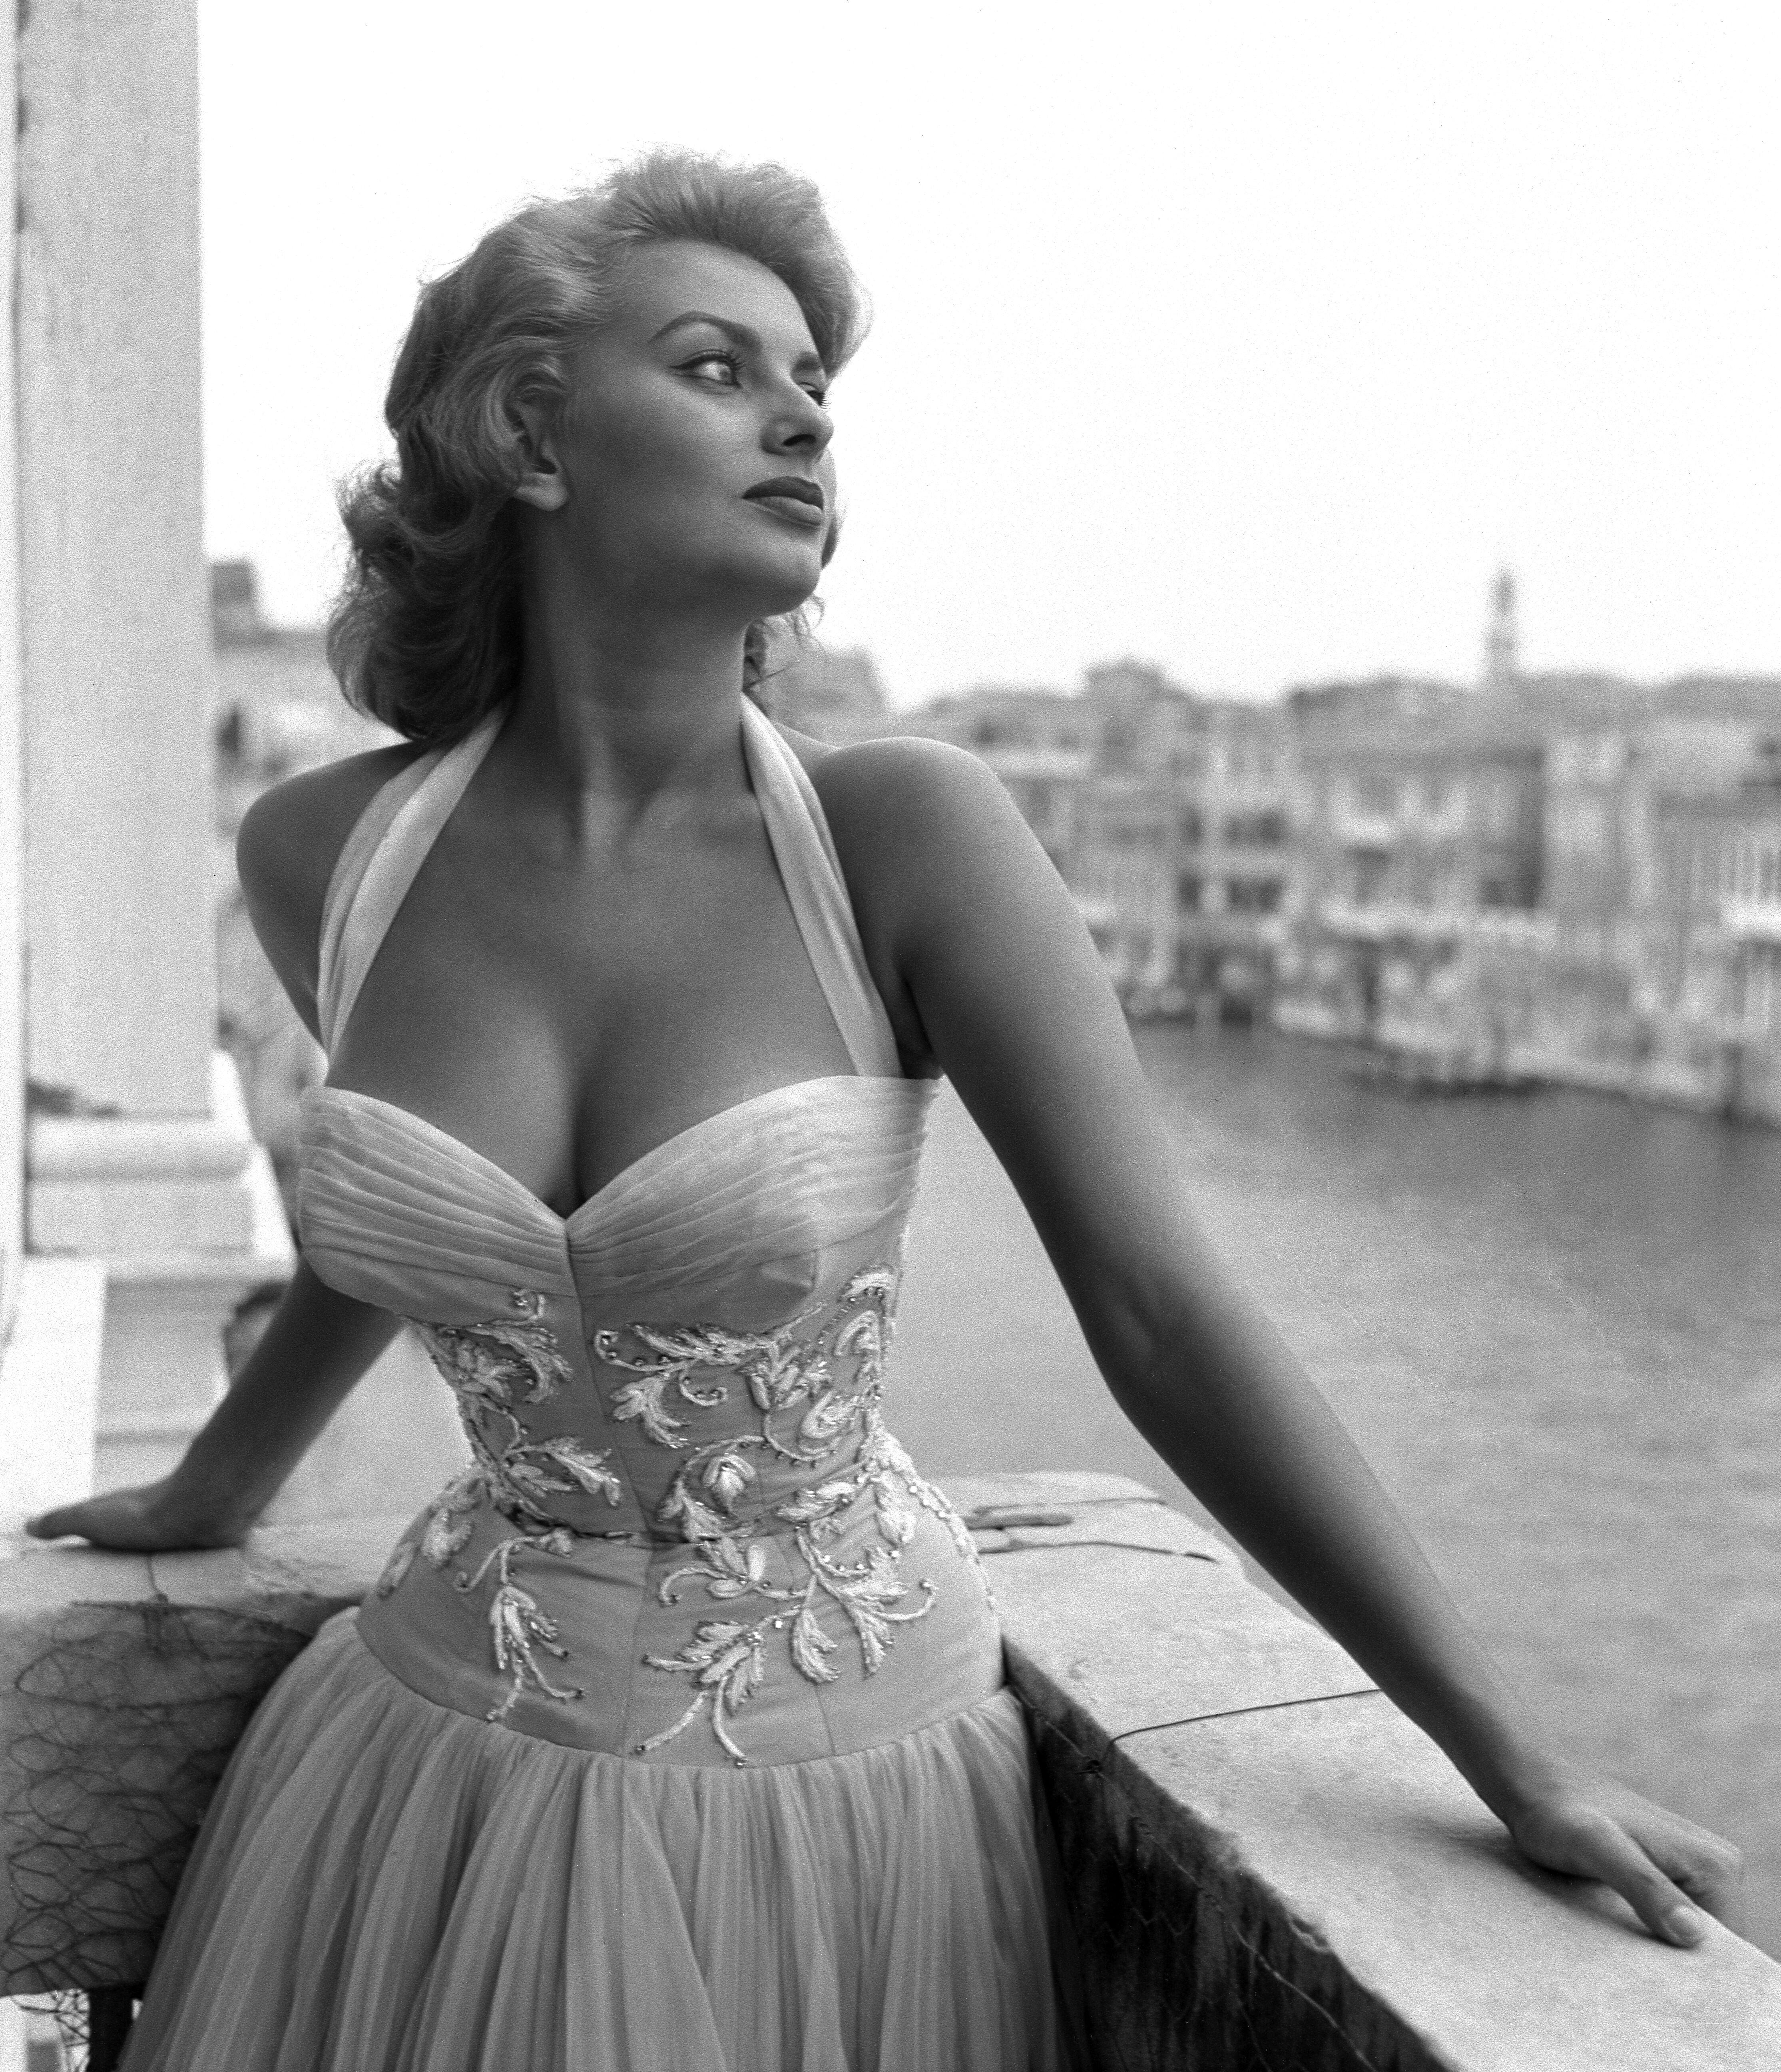 Sophia Loren on a terrace on the Canal Grande in Venice, 1955 | Source: Getty Images